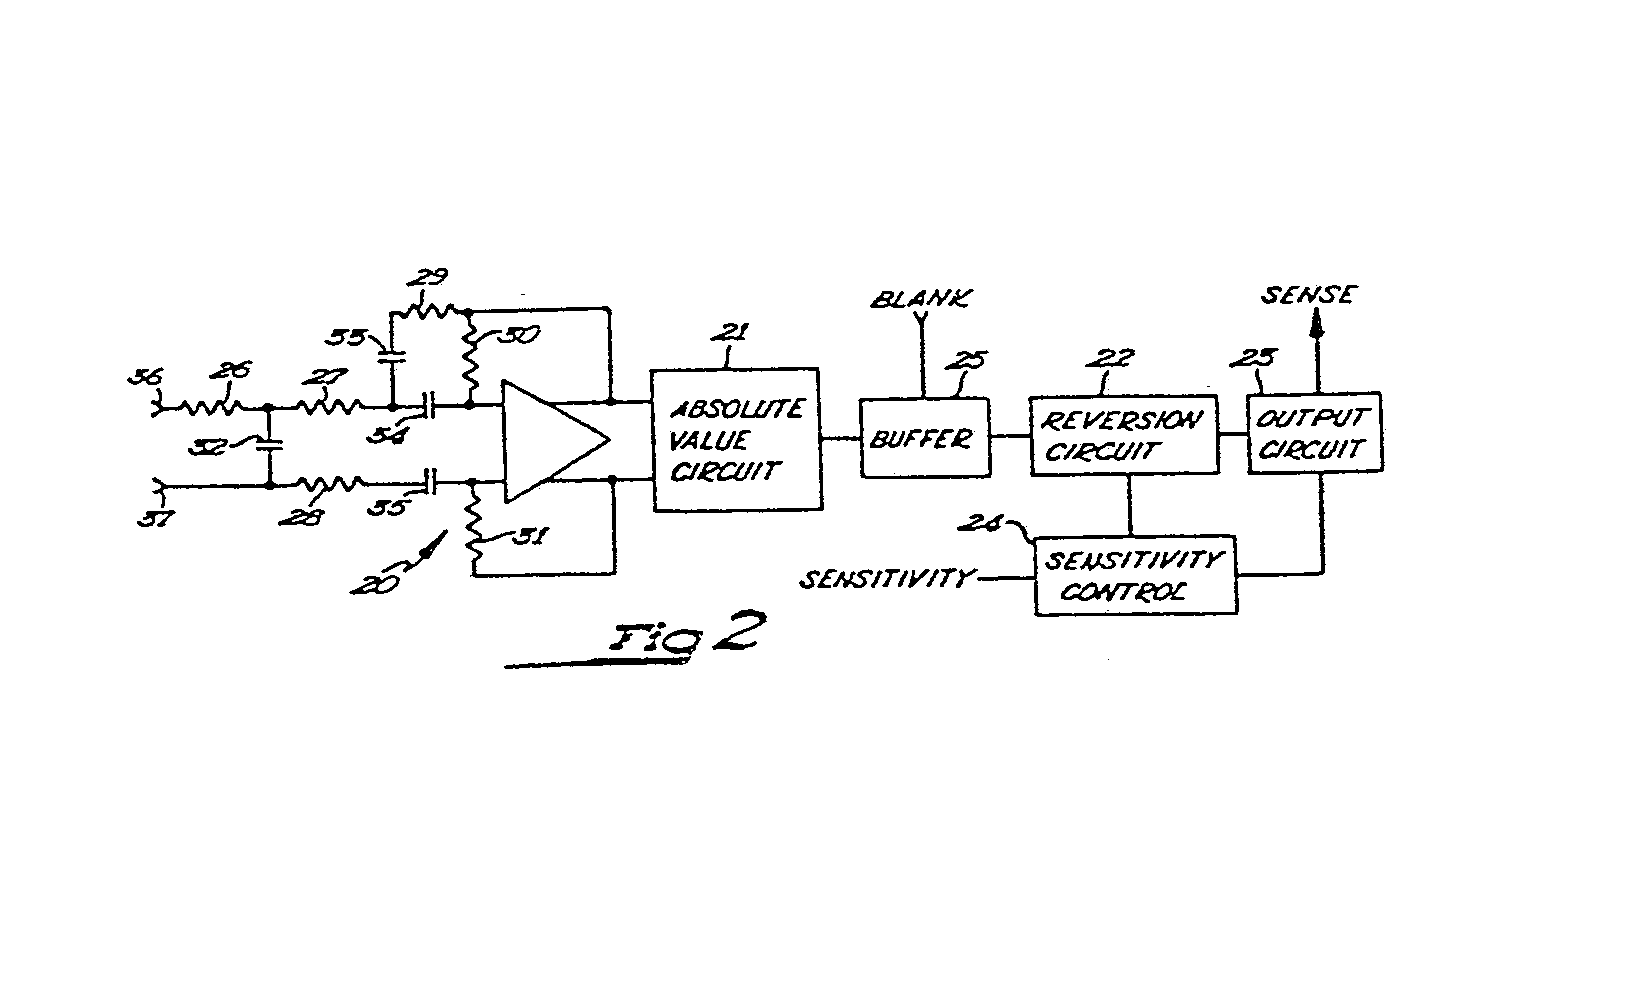 Cardiac Pacemaker Patent 0011933 Simple Buffered Analog Switch Circuit Diagram Electronic To The Capacitors Of Reversion 22 Blanking Signal May Be Supplied From Digital Circuitry And Is Arranged Bias Buffer Amplifier Into